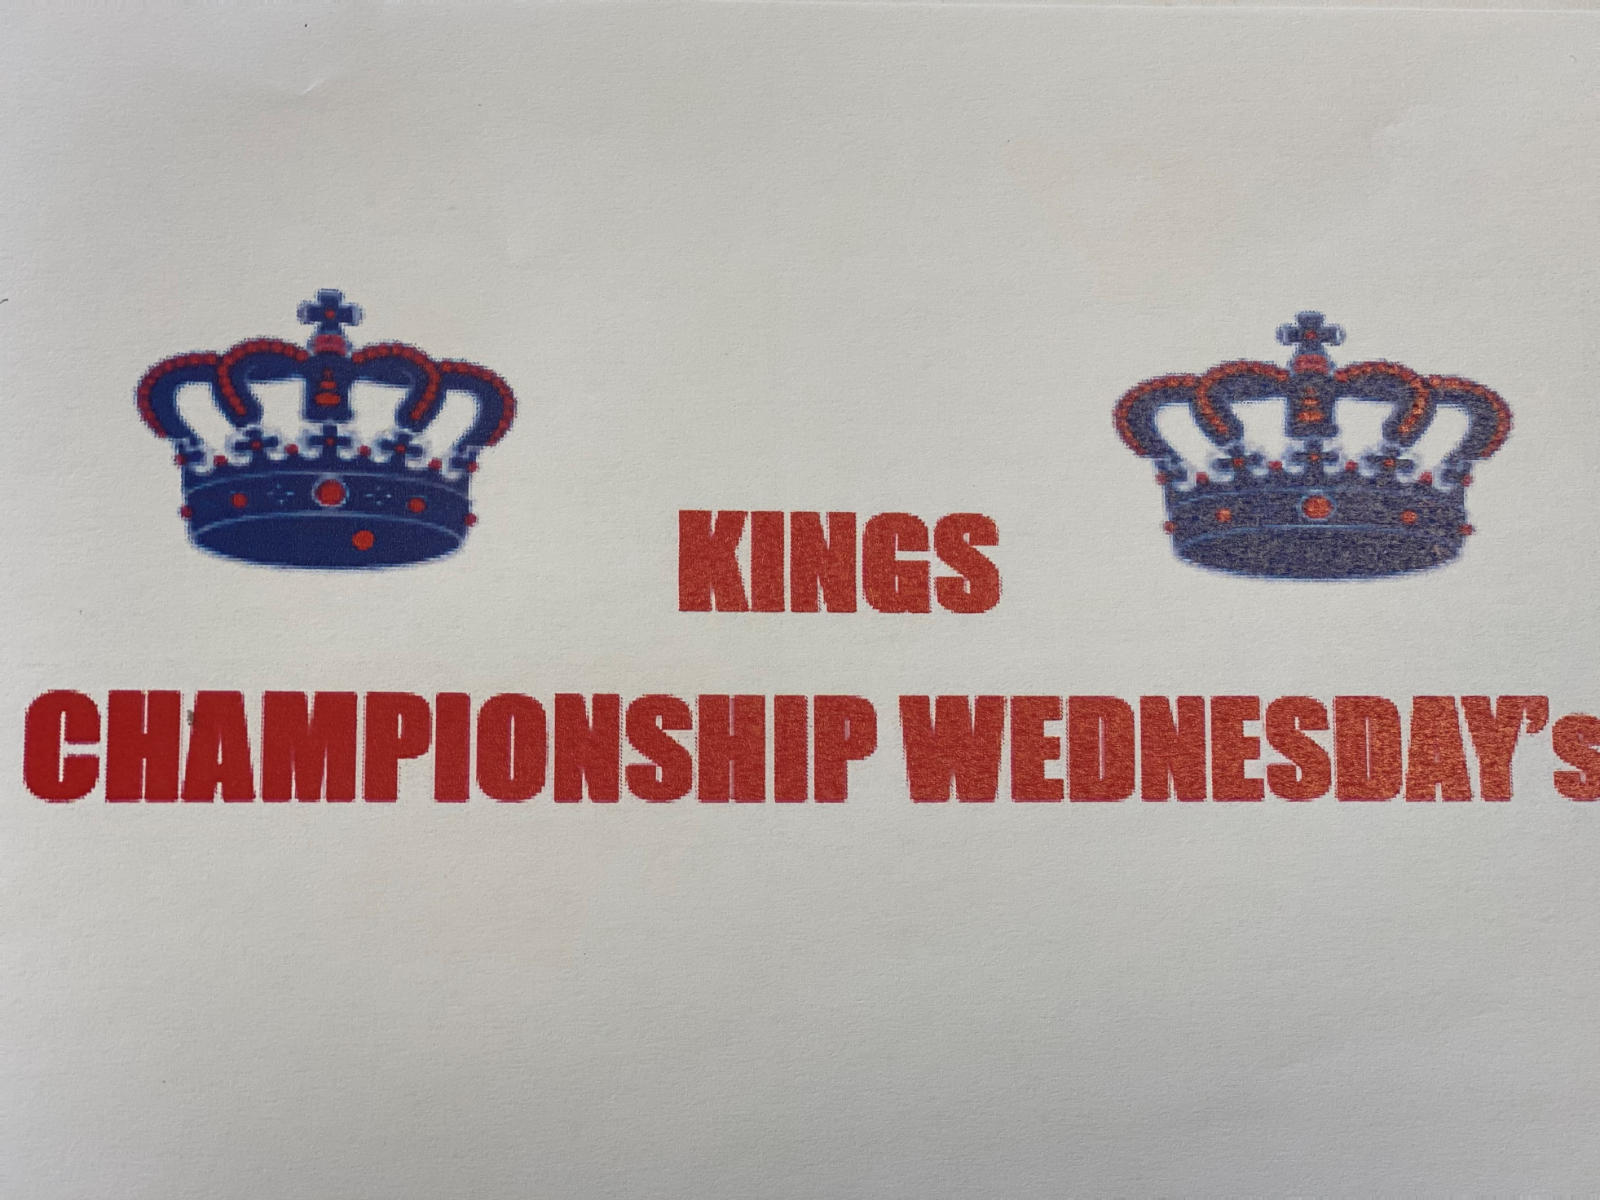 Championship Wednesday moved to Friday this week